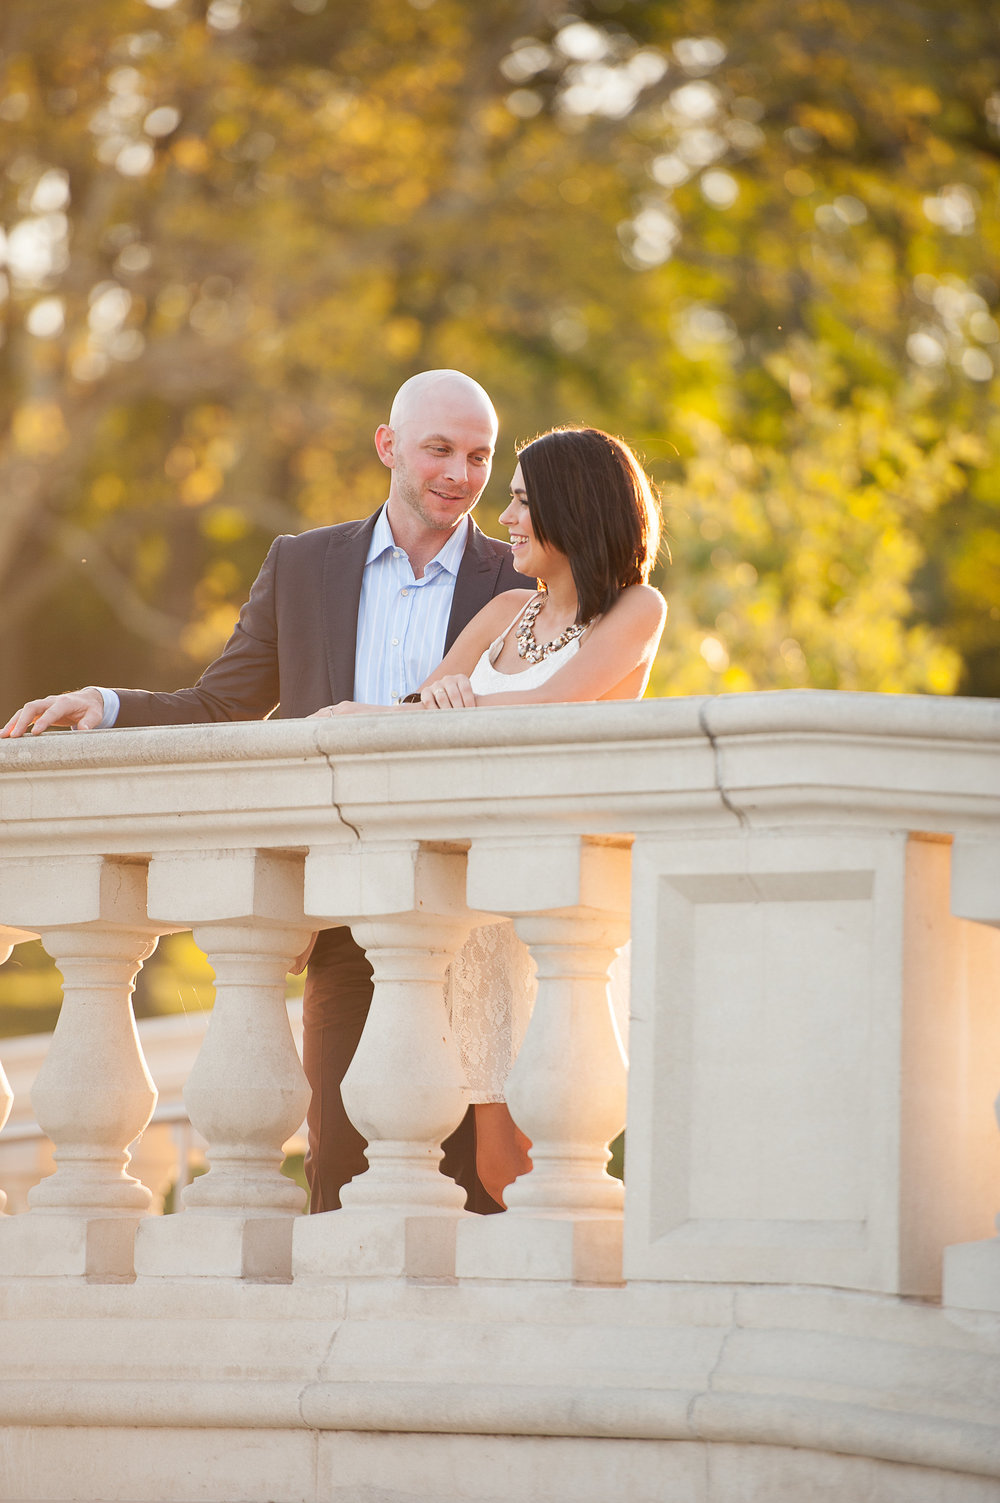 St. Louis Engagements by Christa Donald Photography_08.jpg